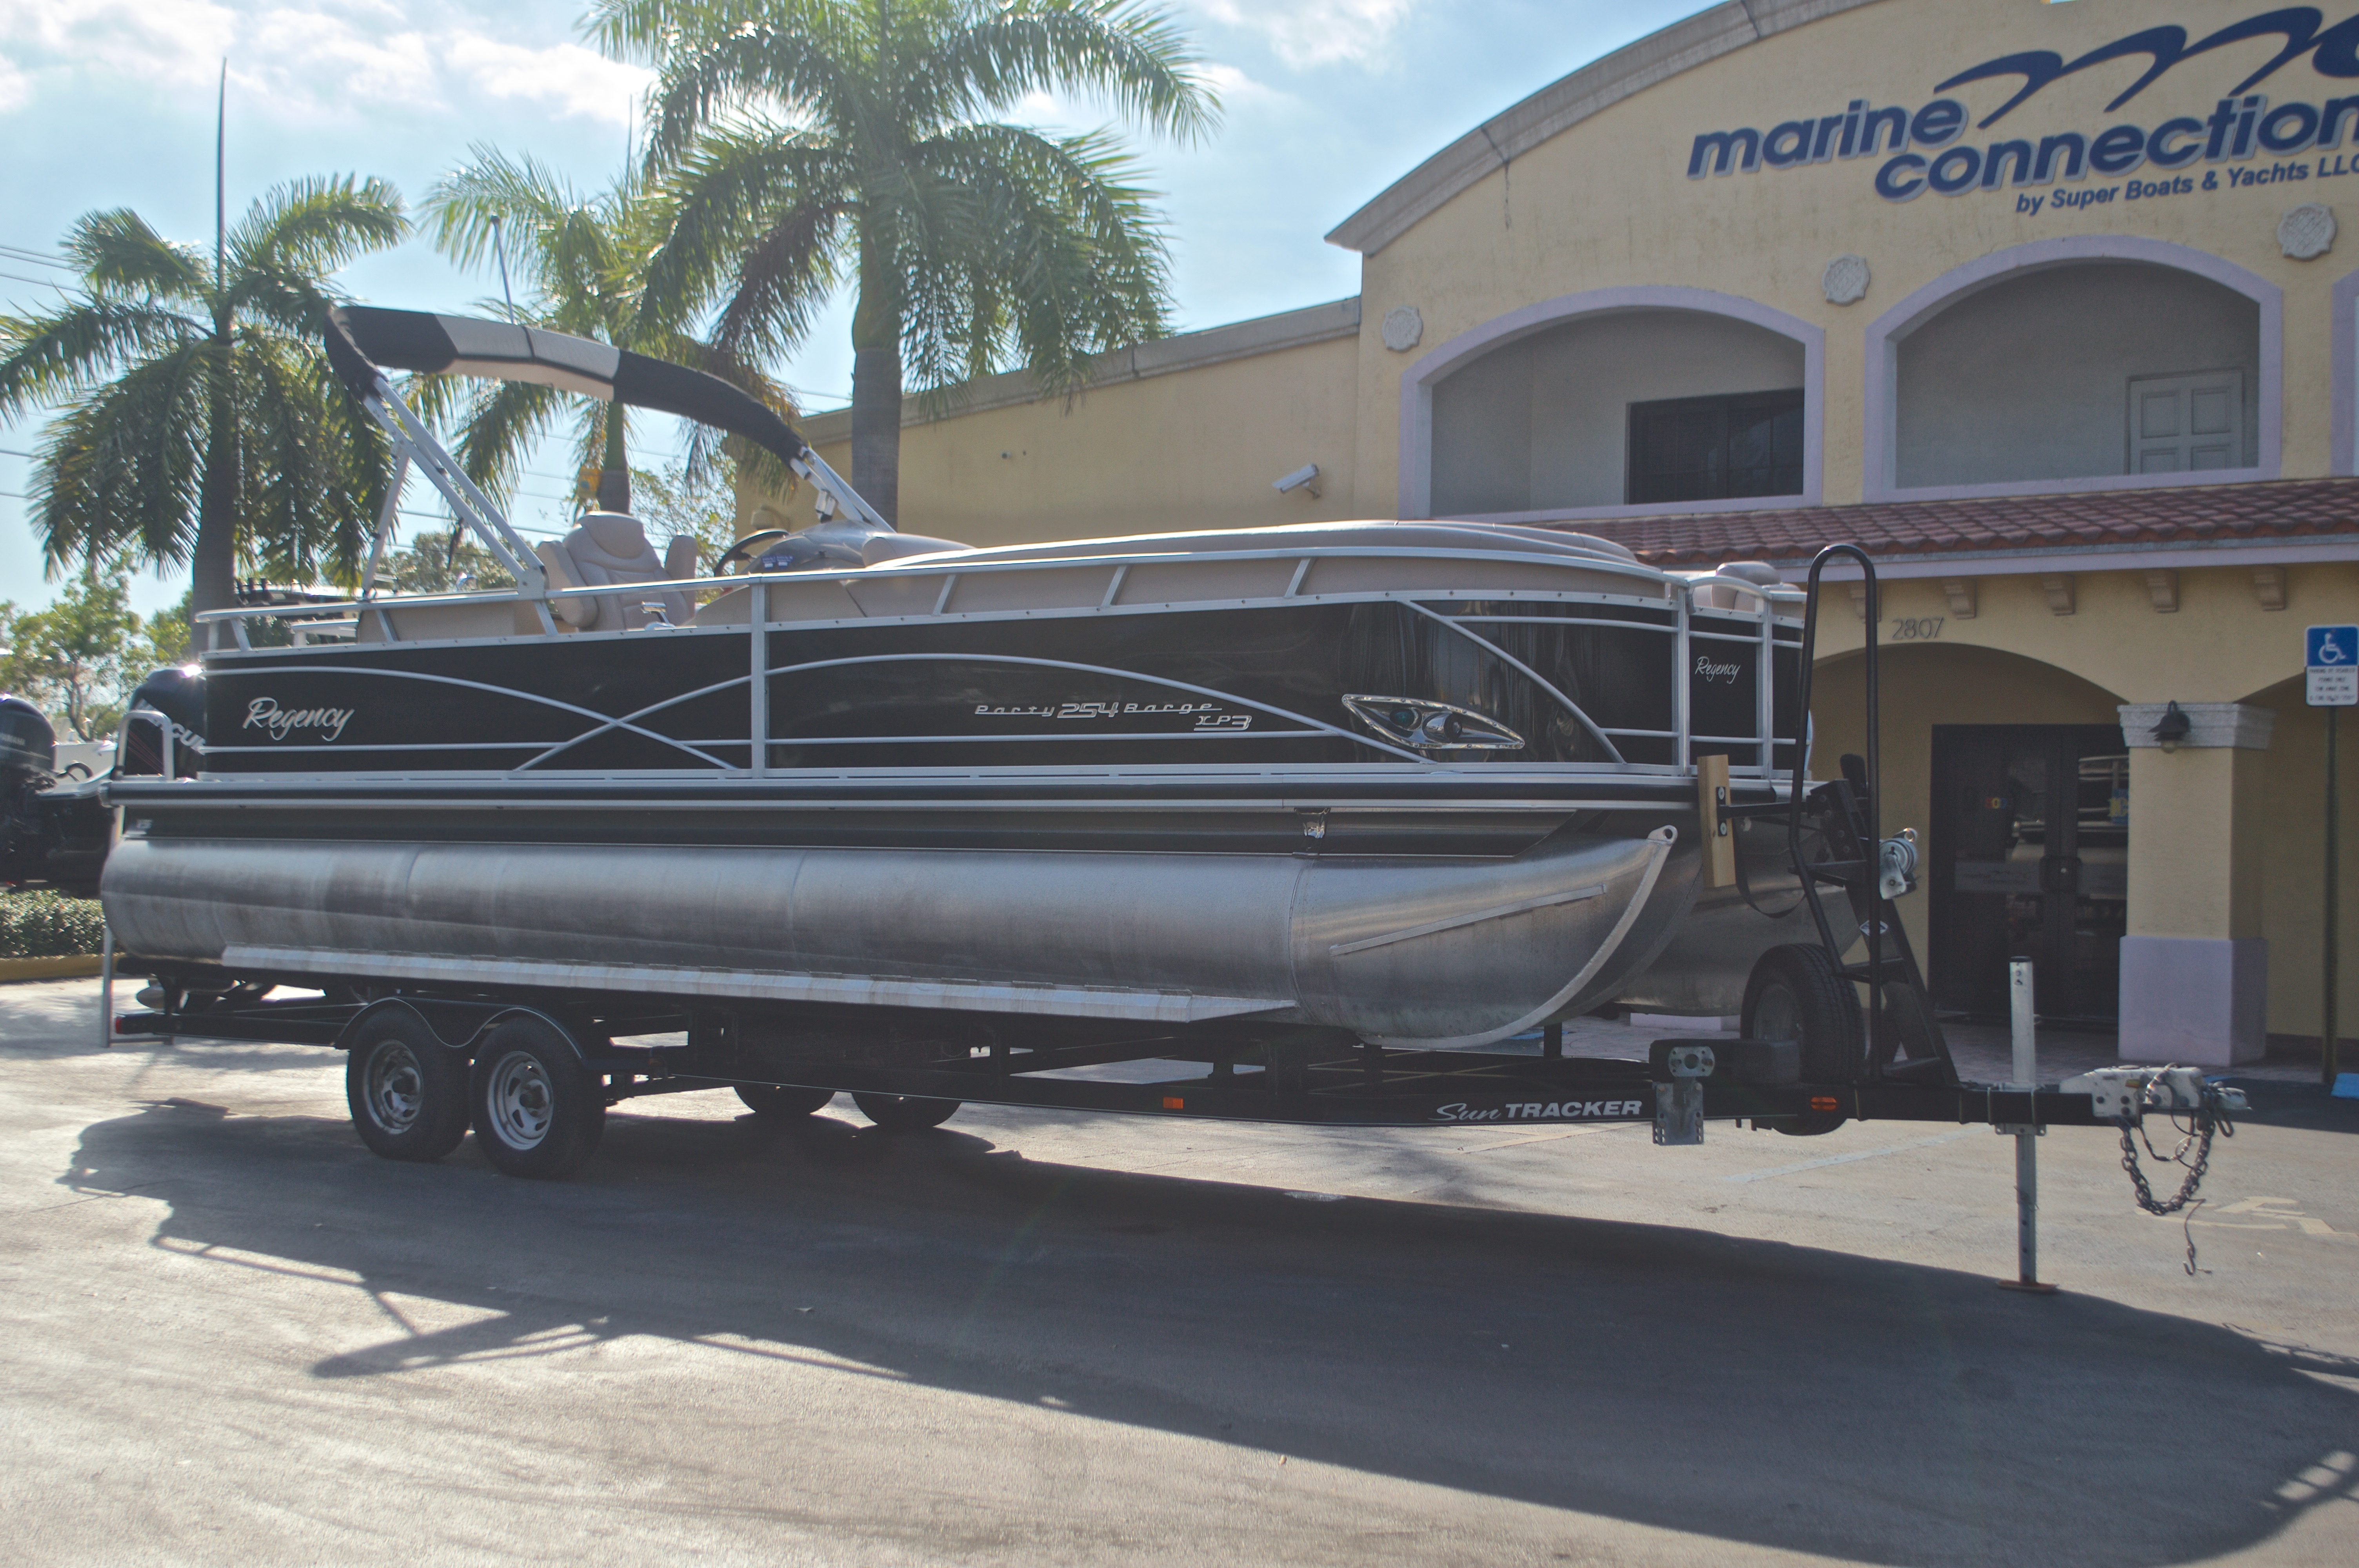 Thumbnail 2 for Used 2014 Regency Party Barge 254 XP3 boat for sale in West Palm Beach, FL